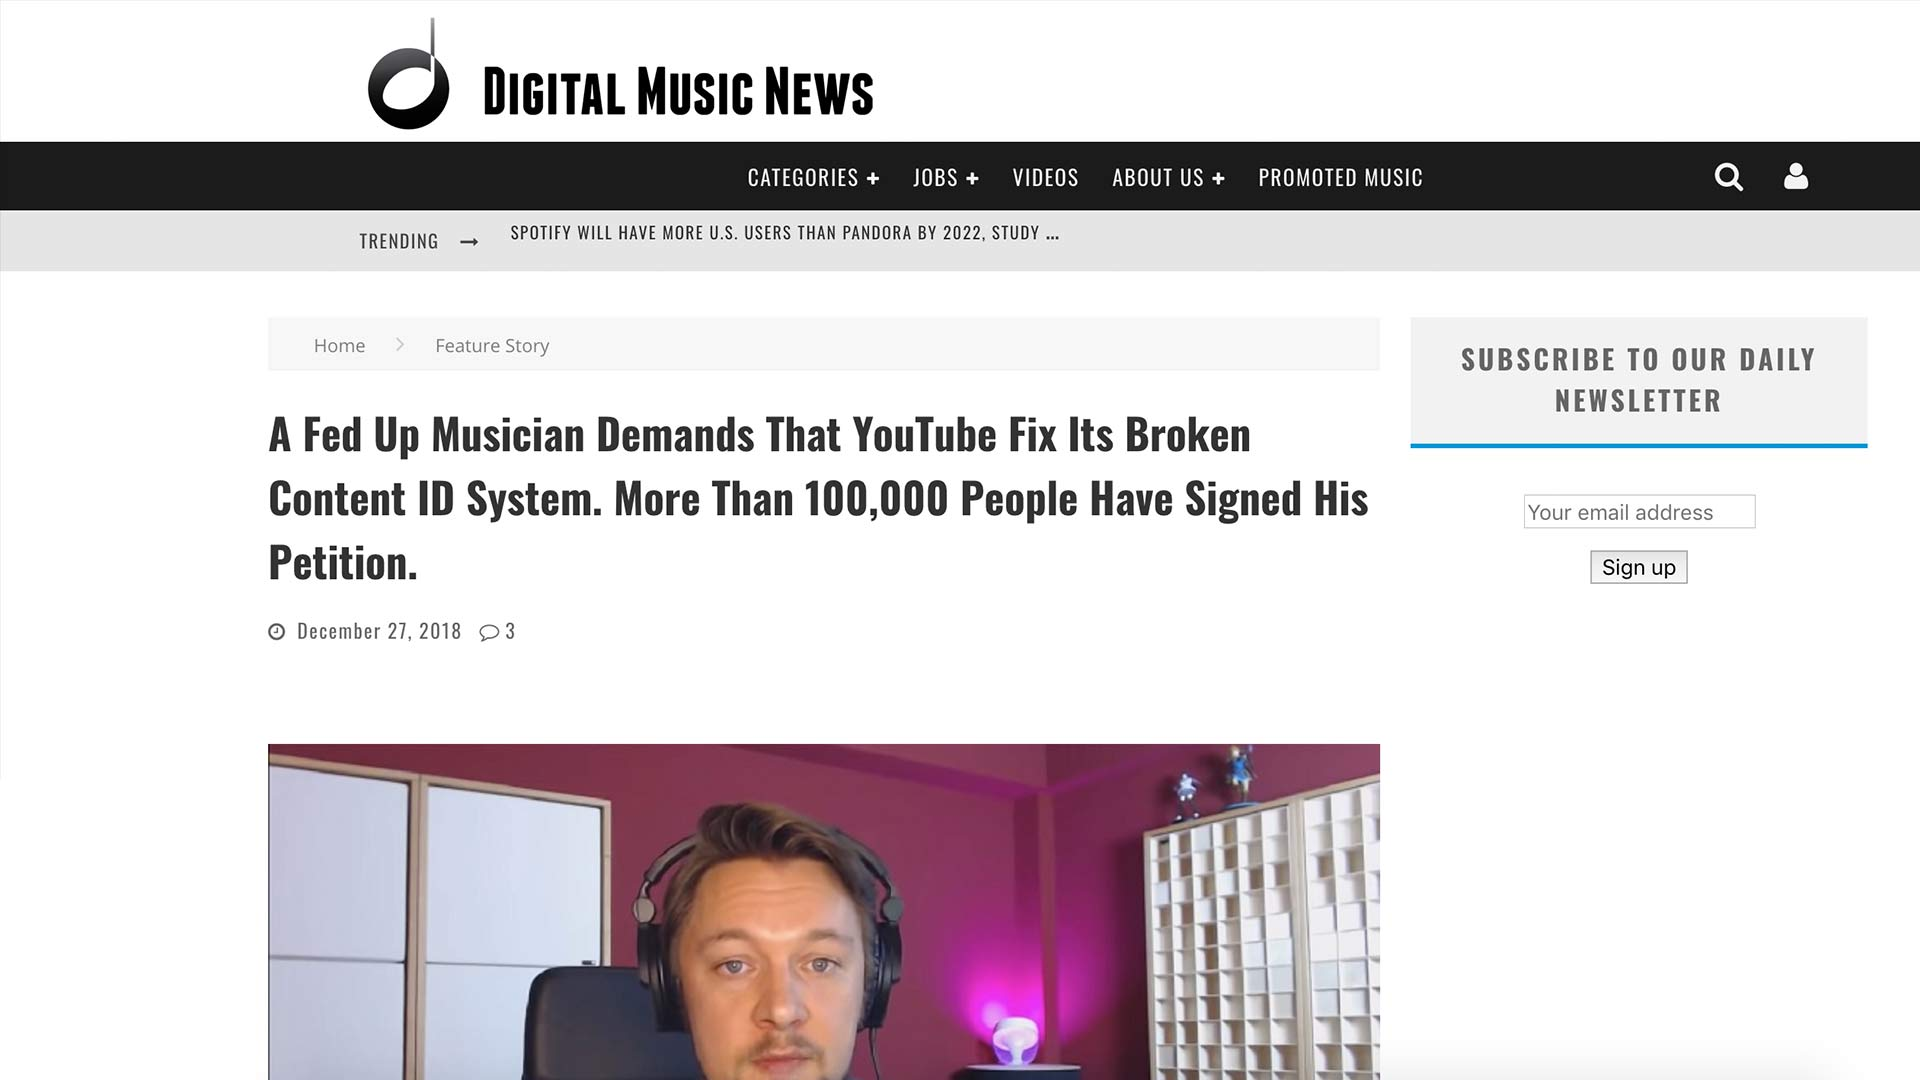 Fairness Rocks News A Fed Up Musician Demands That YouTube Fix Its Broken Content ID System. More Than 100,000 People Have Signed His Petition.